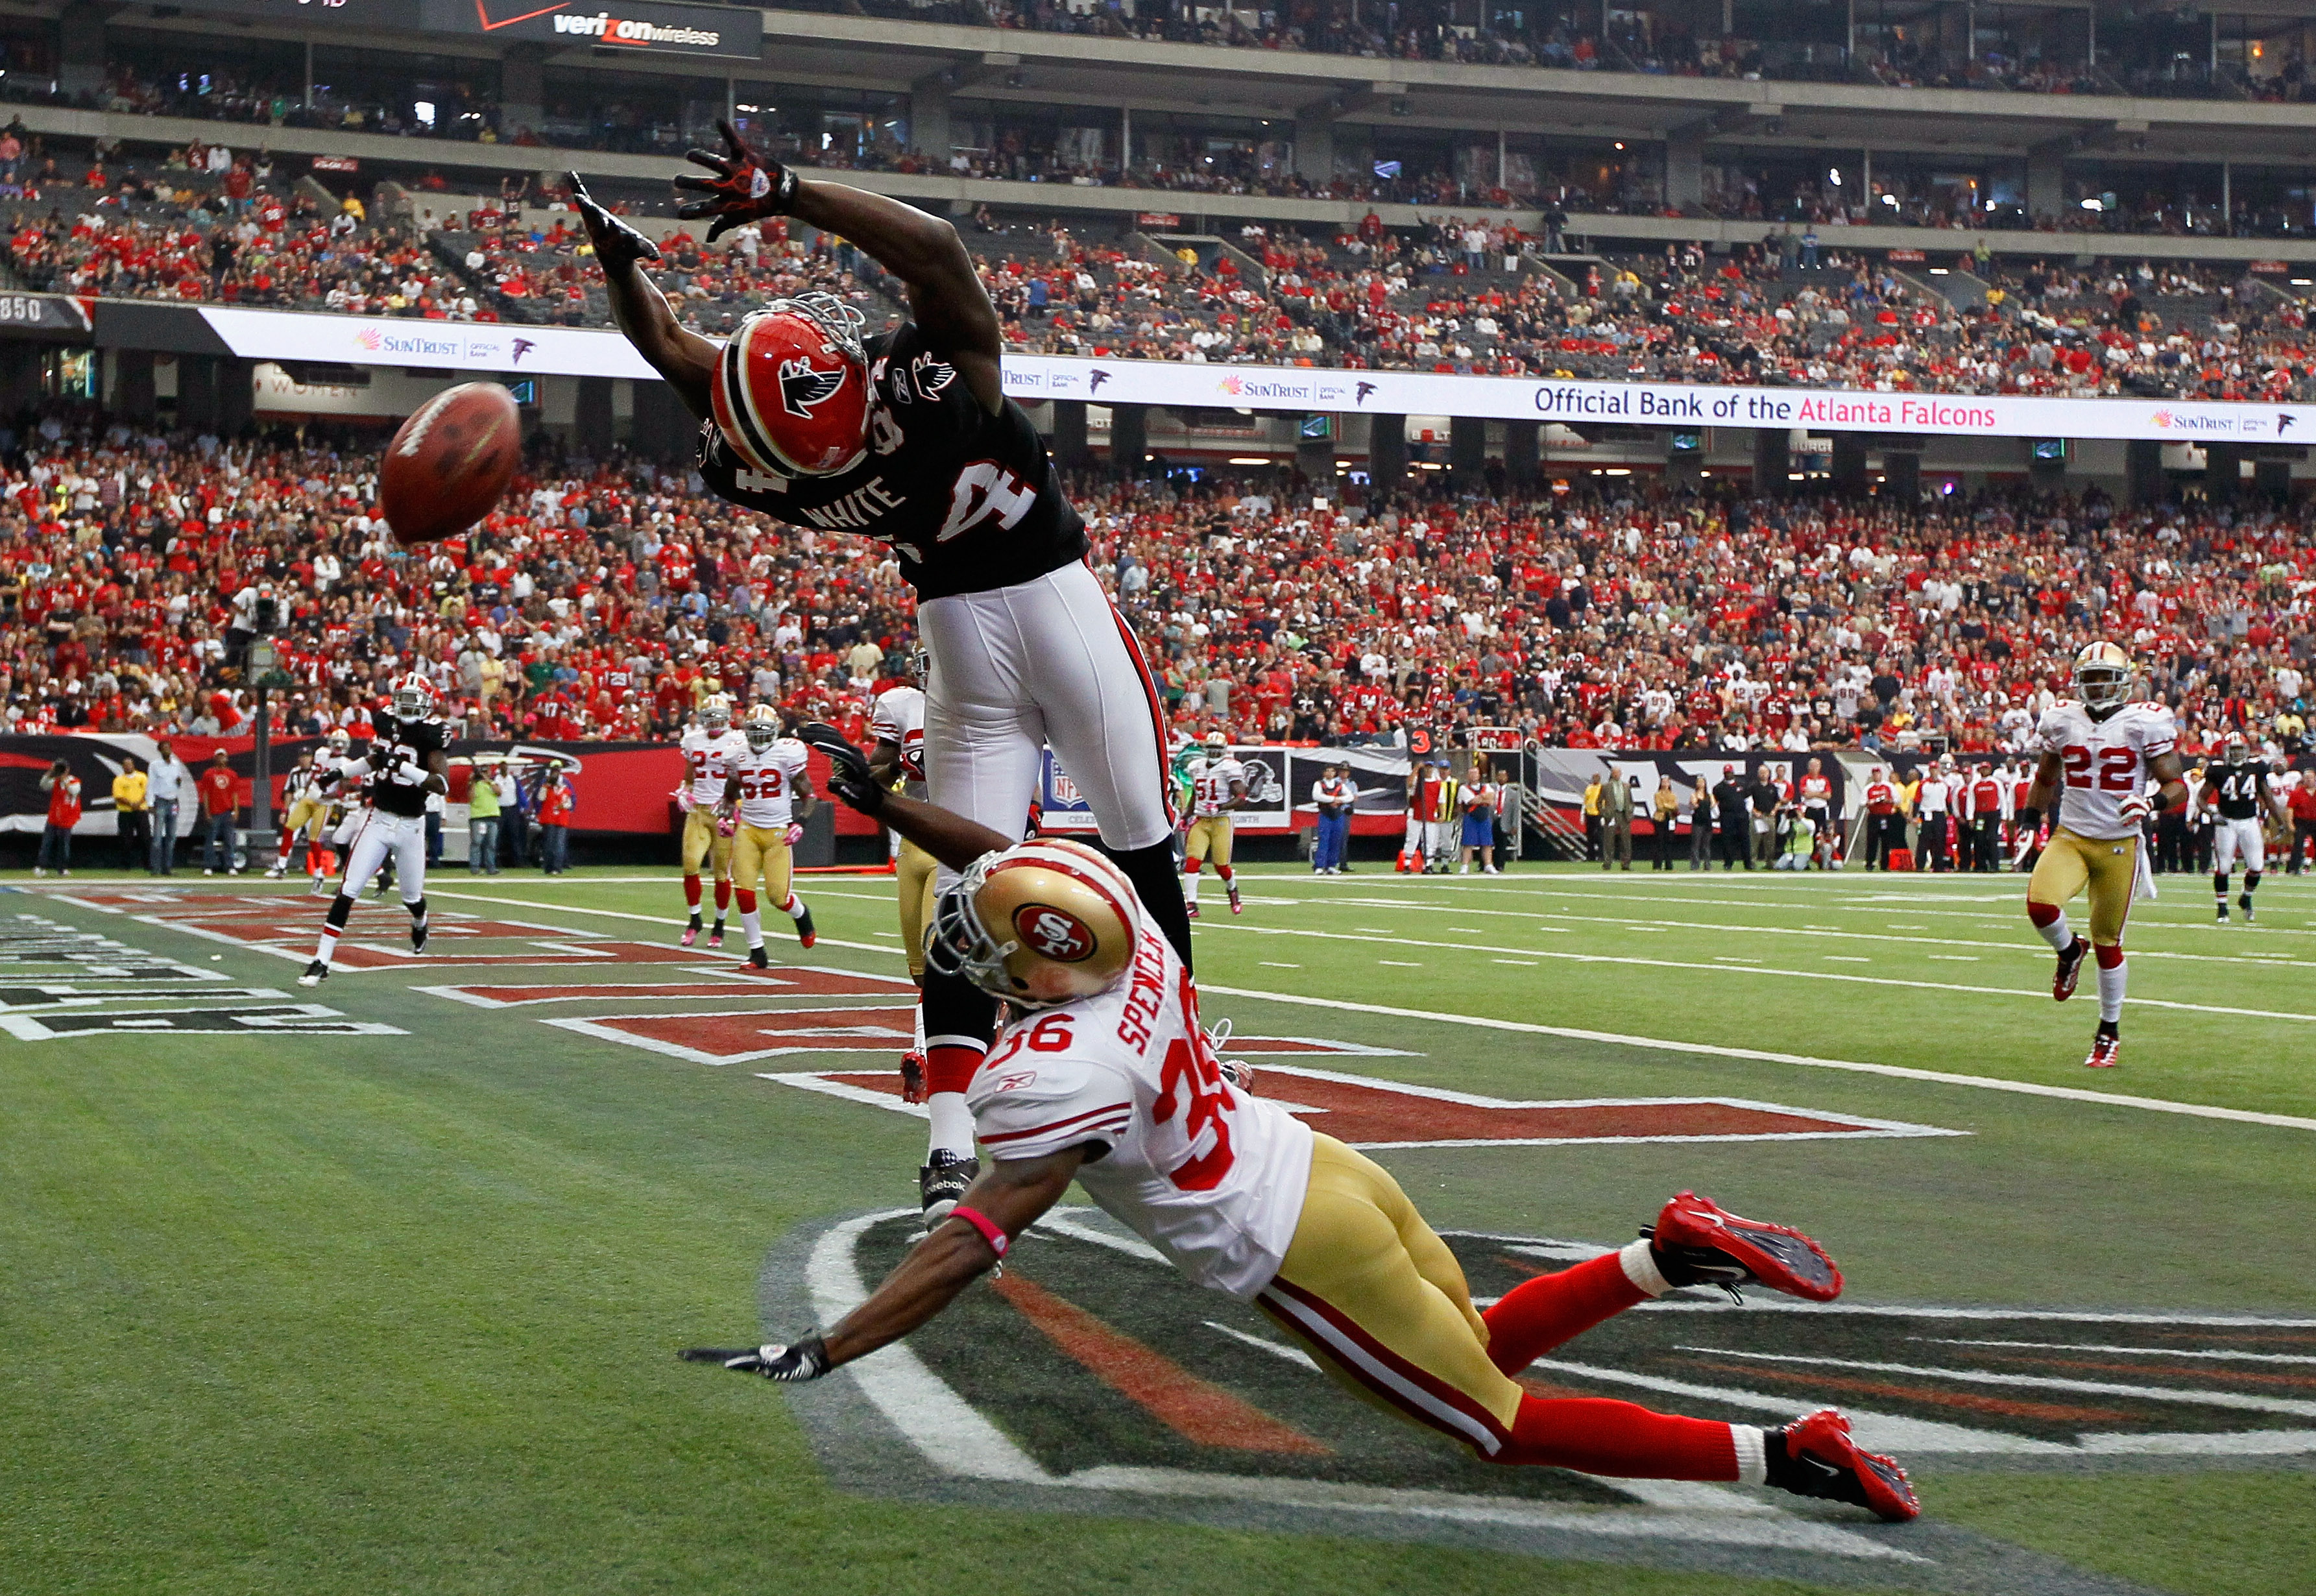 ATLANTA - OCTOBER 03:  Roddy White #84 of the Atlanta Falcons fails to pull in this touchdown reception against Shawntae Spencer #36 of the San Francisco 49ers at Georgia Dome on October 3, 2010 in Atlanta, Georgia.  (Photo by Kevin C. Cox/Getty Images)